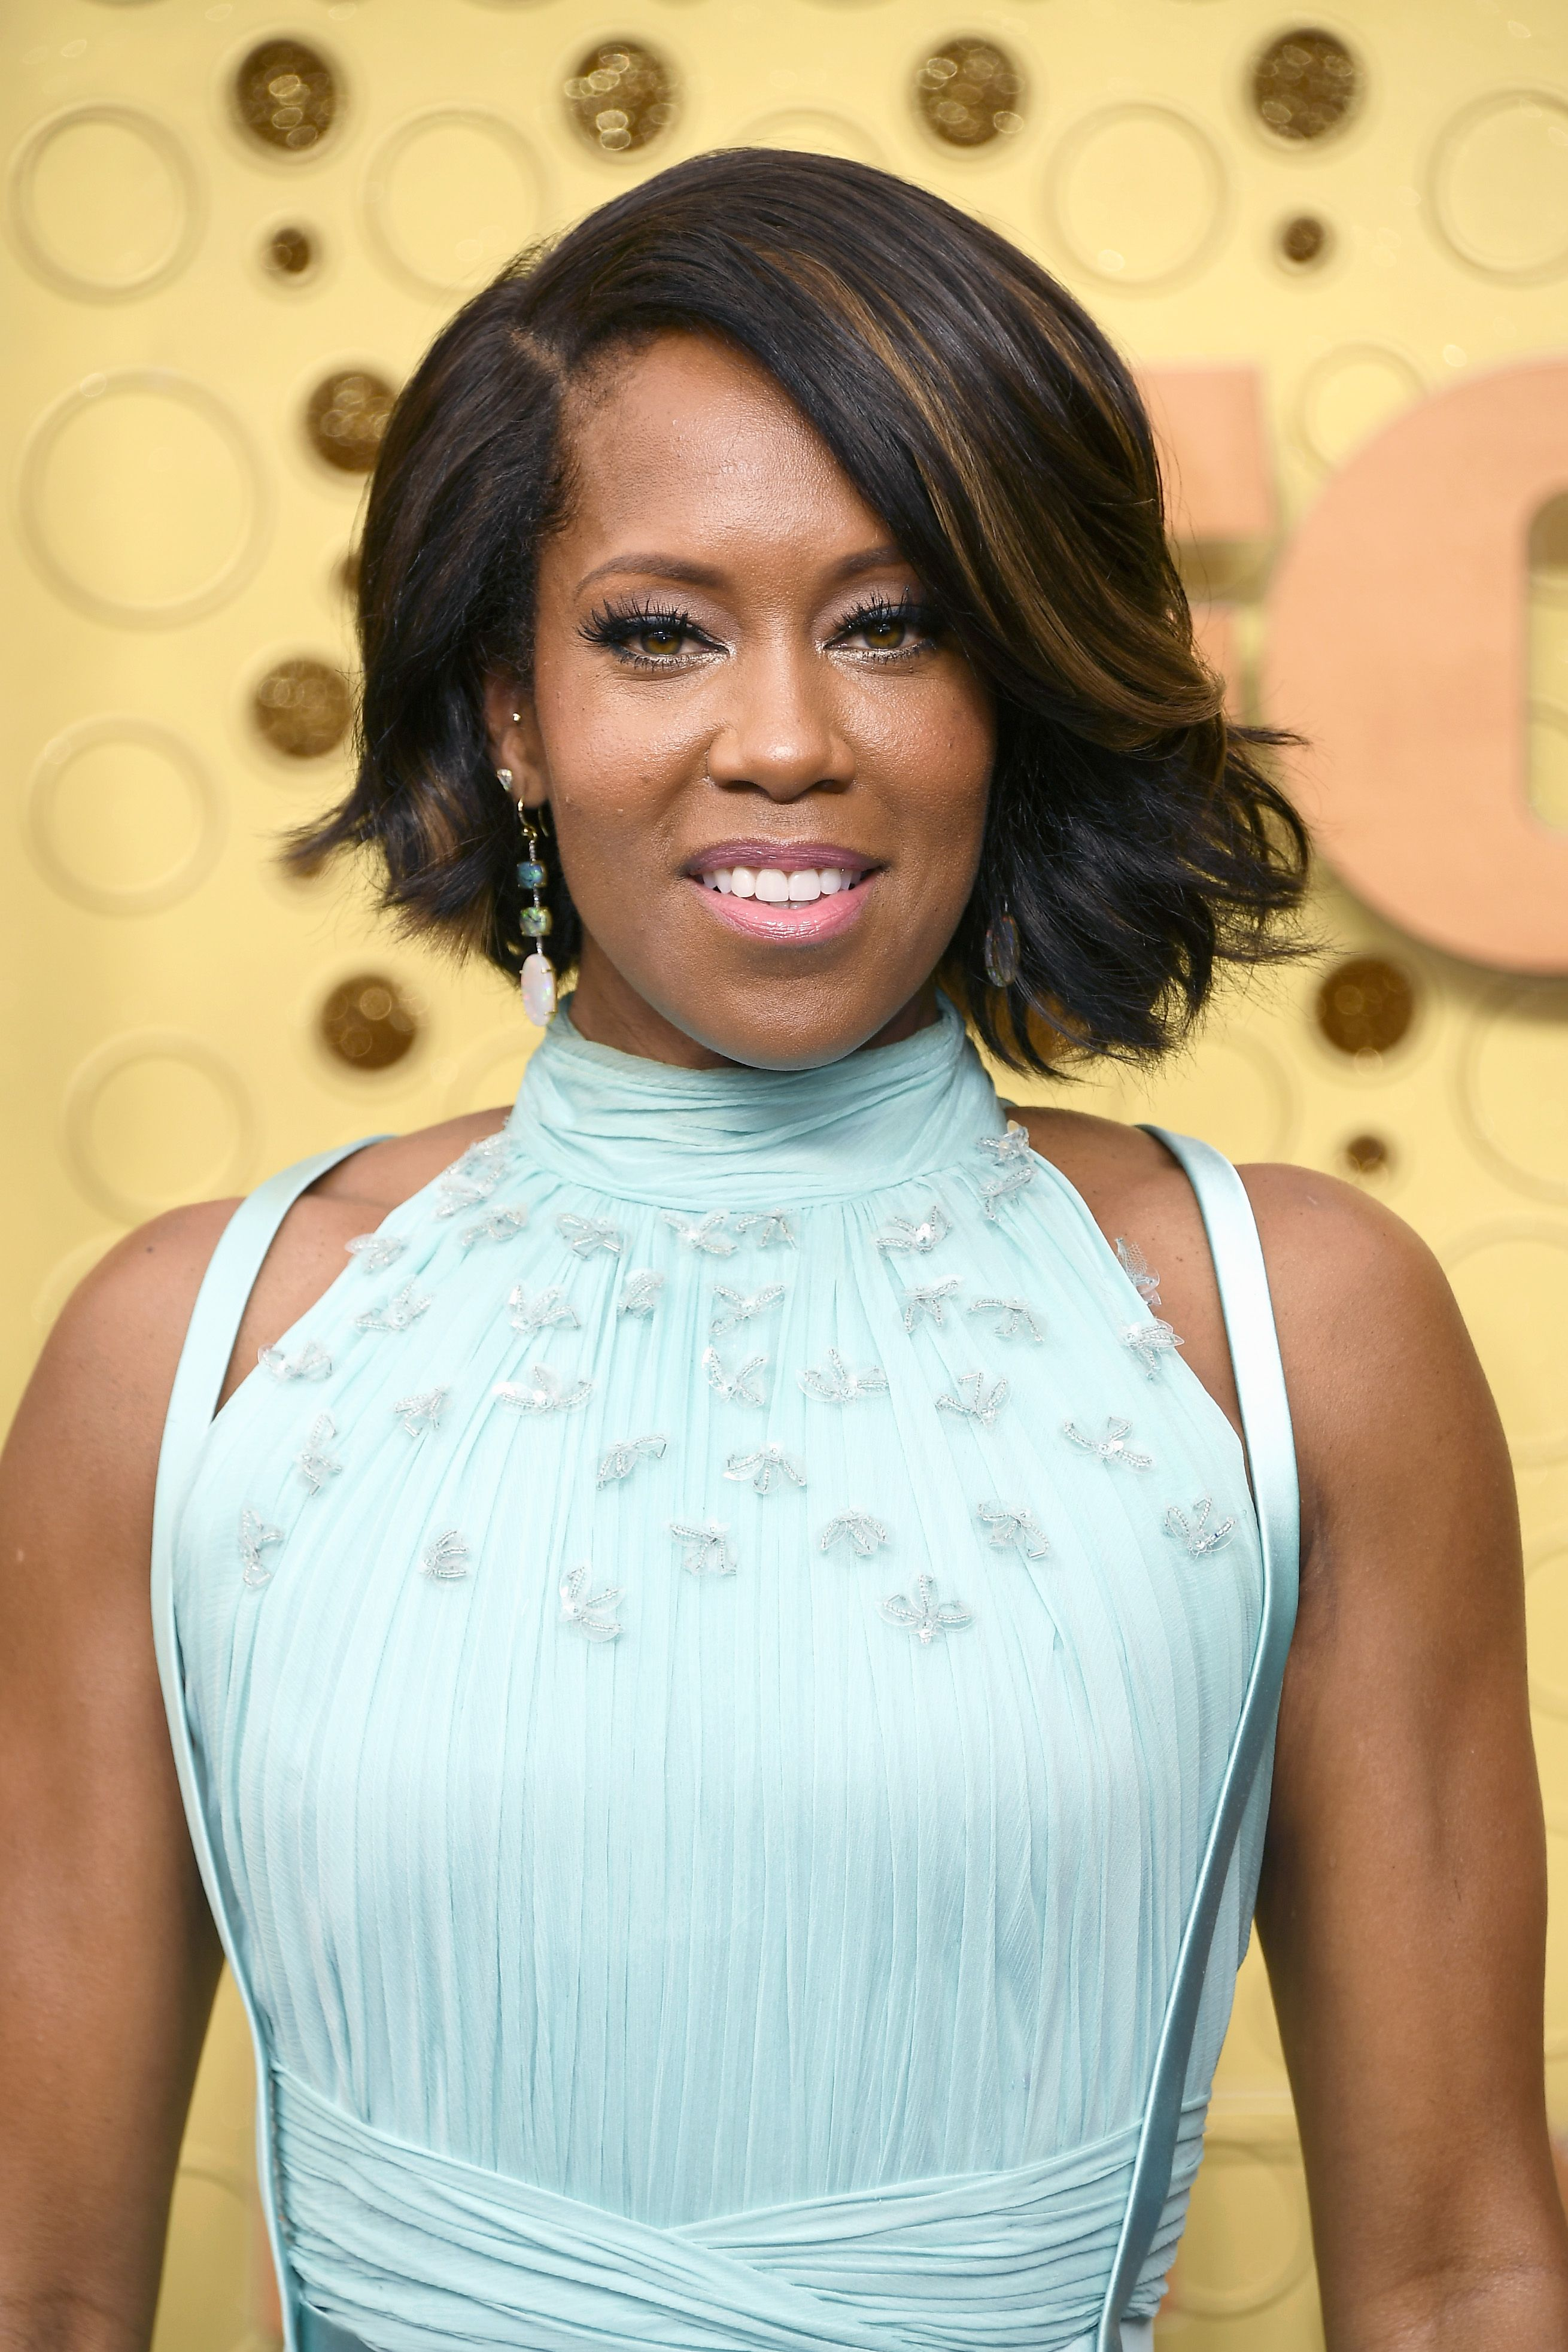 Regina King wore a Breonna Taylor T-shirt for the Emmys